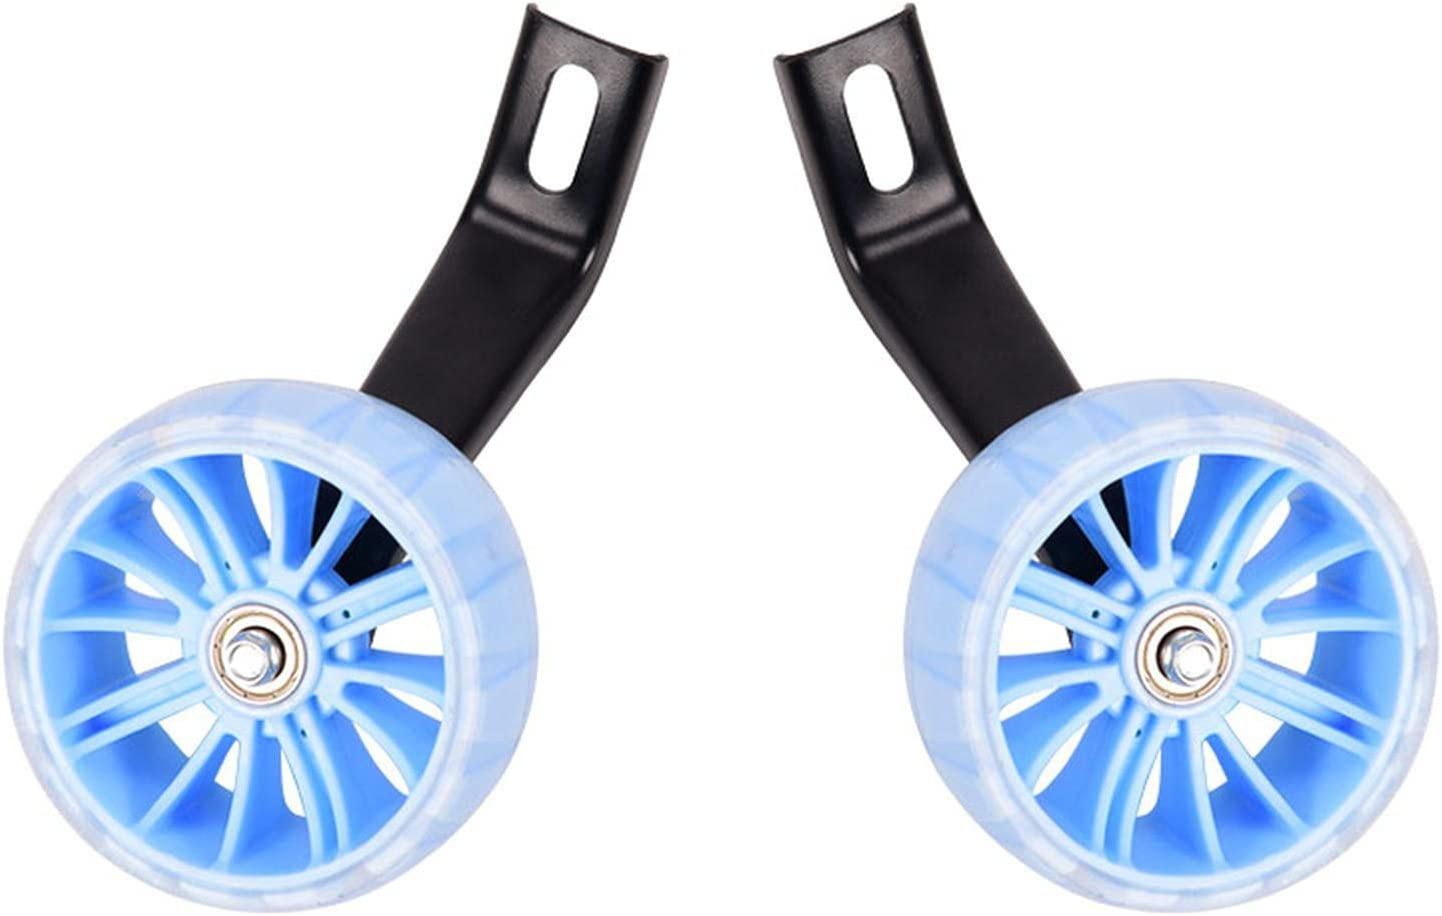 Soghot Fashion 1 Pair Bicycle Bike Free shipping anywhere in the nation Stabiliser Stabilisers Wheels